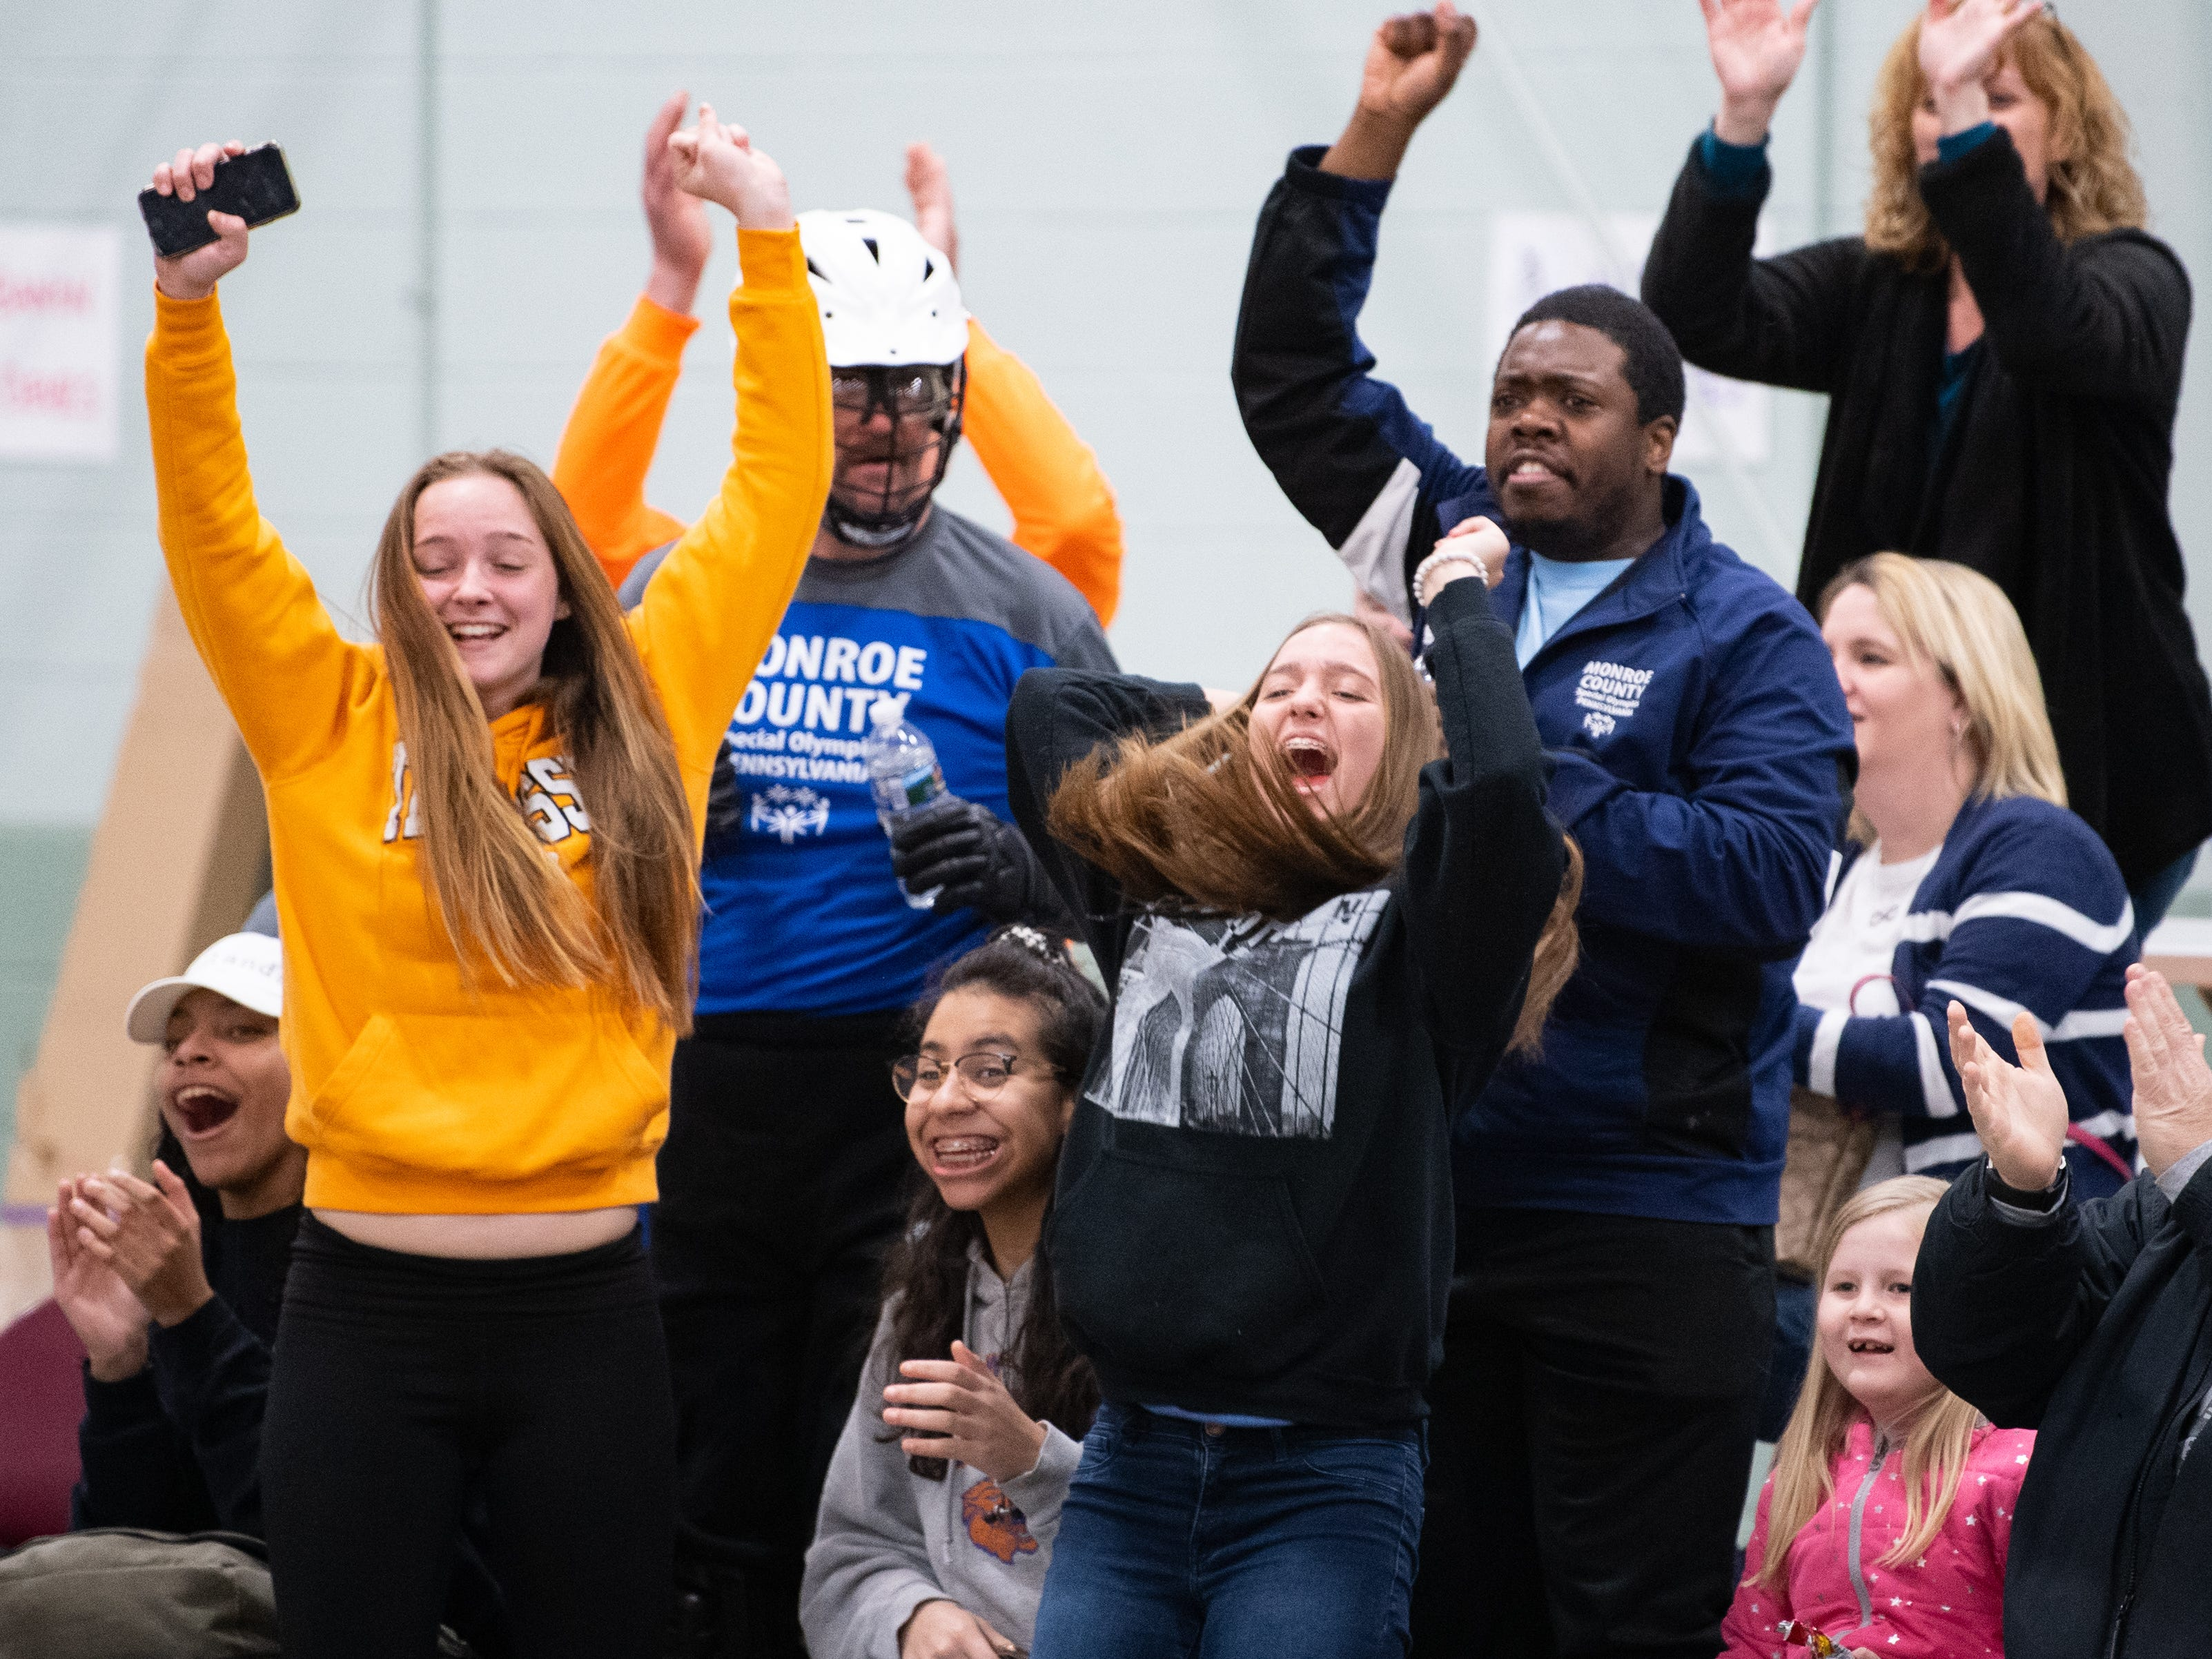 Fans cheer on all of the athletes during the Special Olympics Pennsylvania Indoor Winter Games, March 2, 2019.